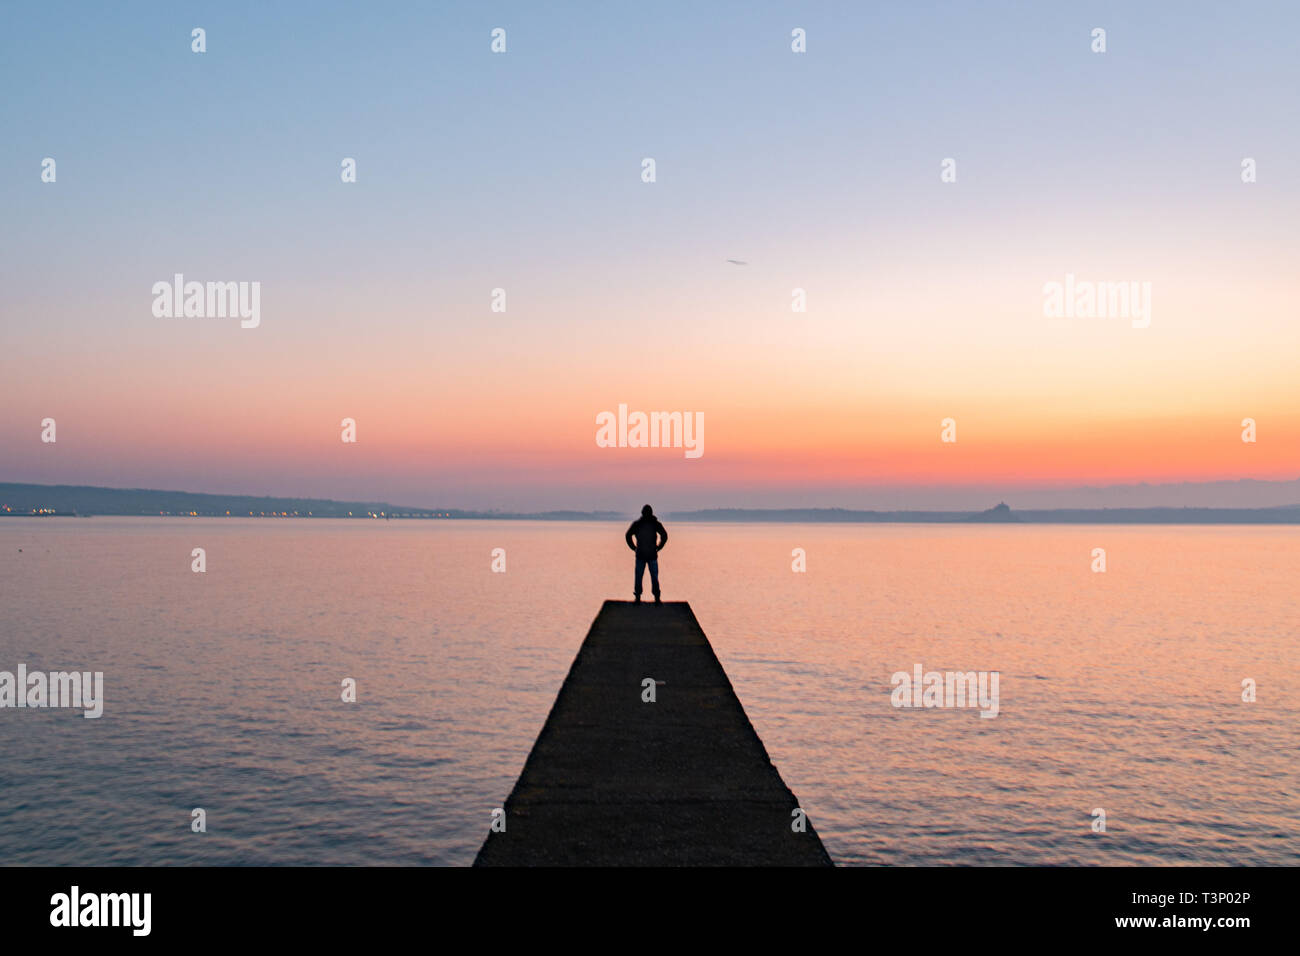 Man silhouetted standing on breakwater which extends out to sea at sunrise Stock Photo